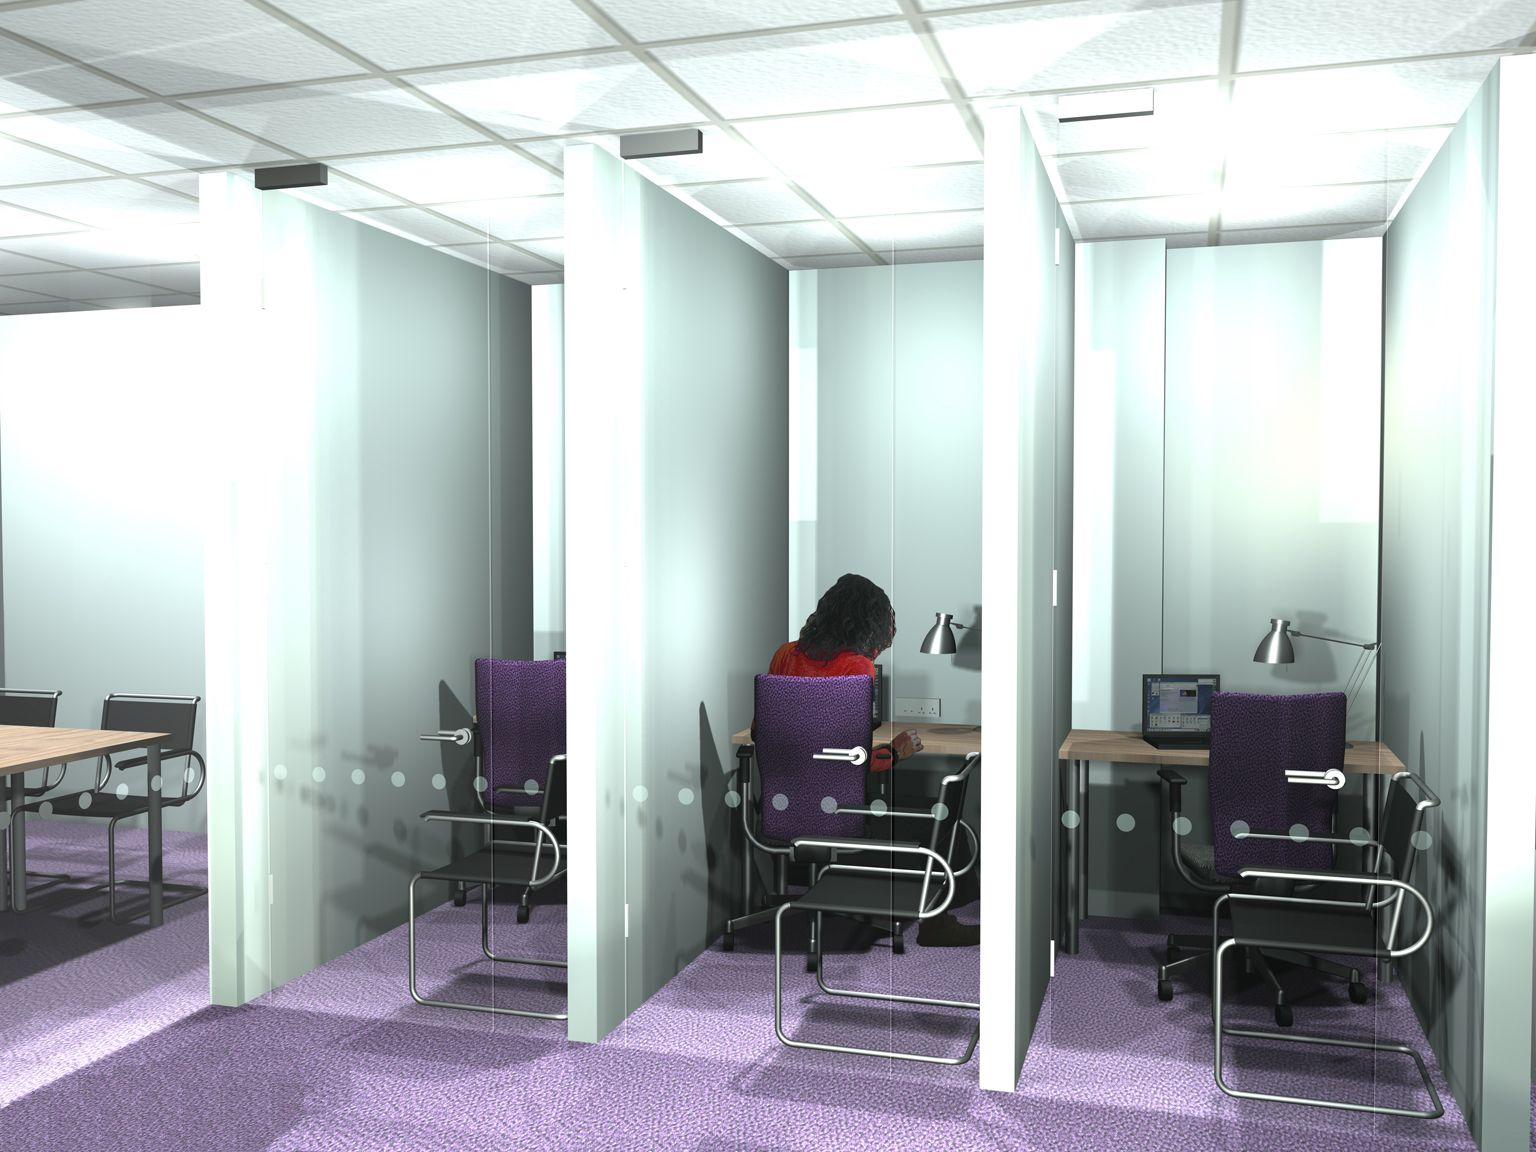 Quiet Office Space Google Search Office Inspiration Pinterest Space Room And Gallery